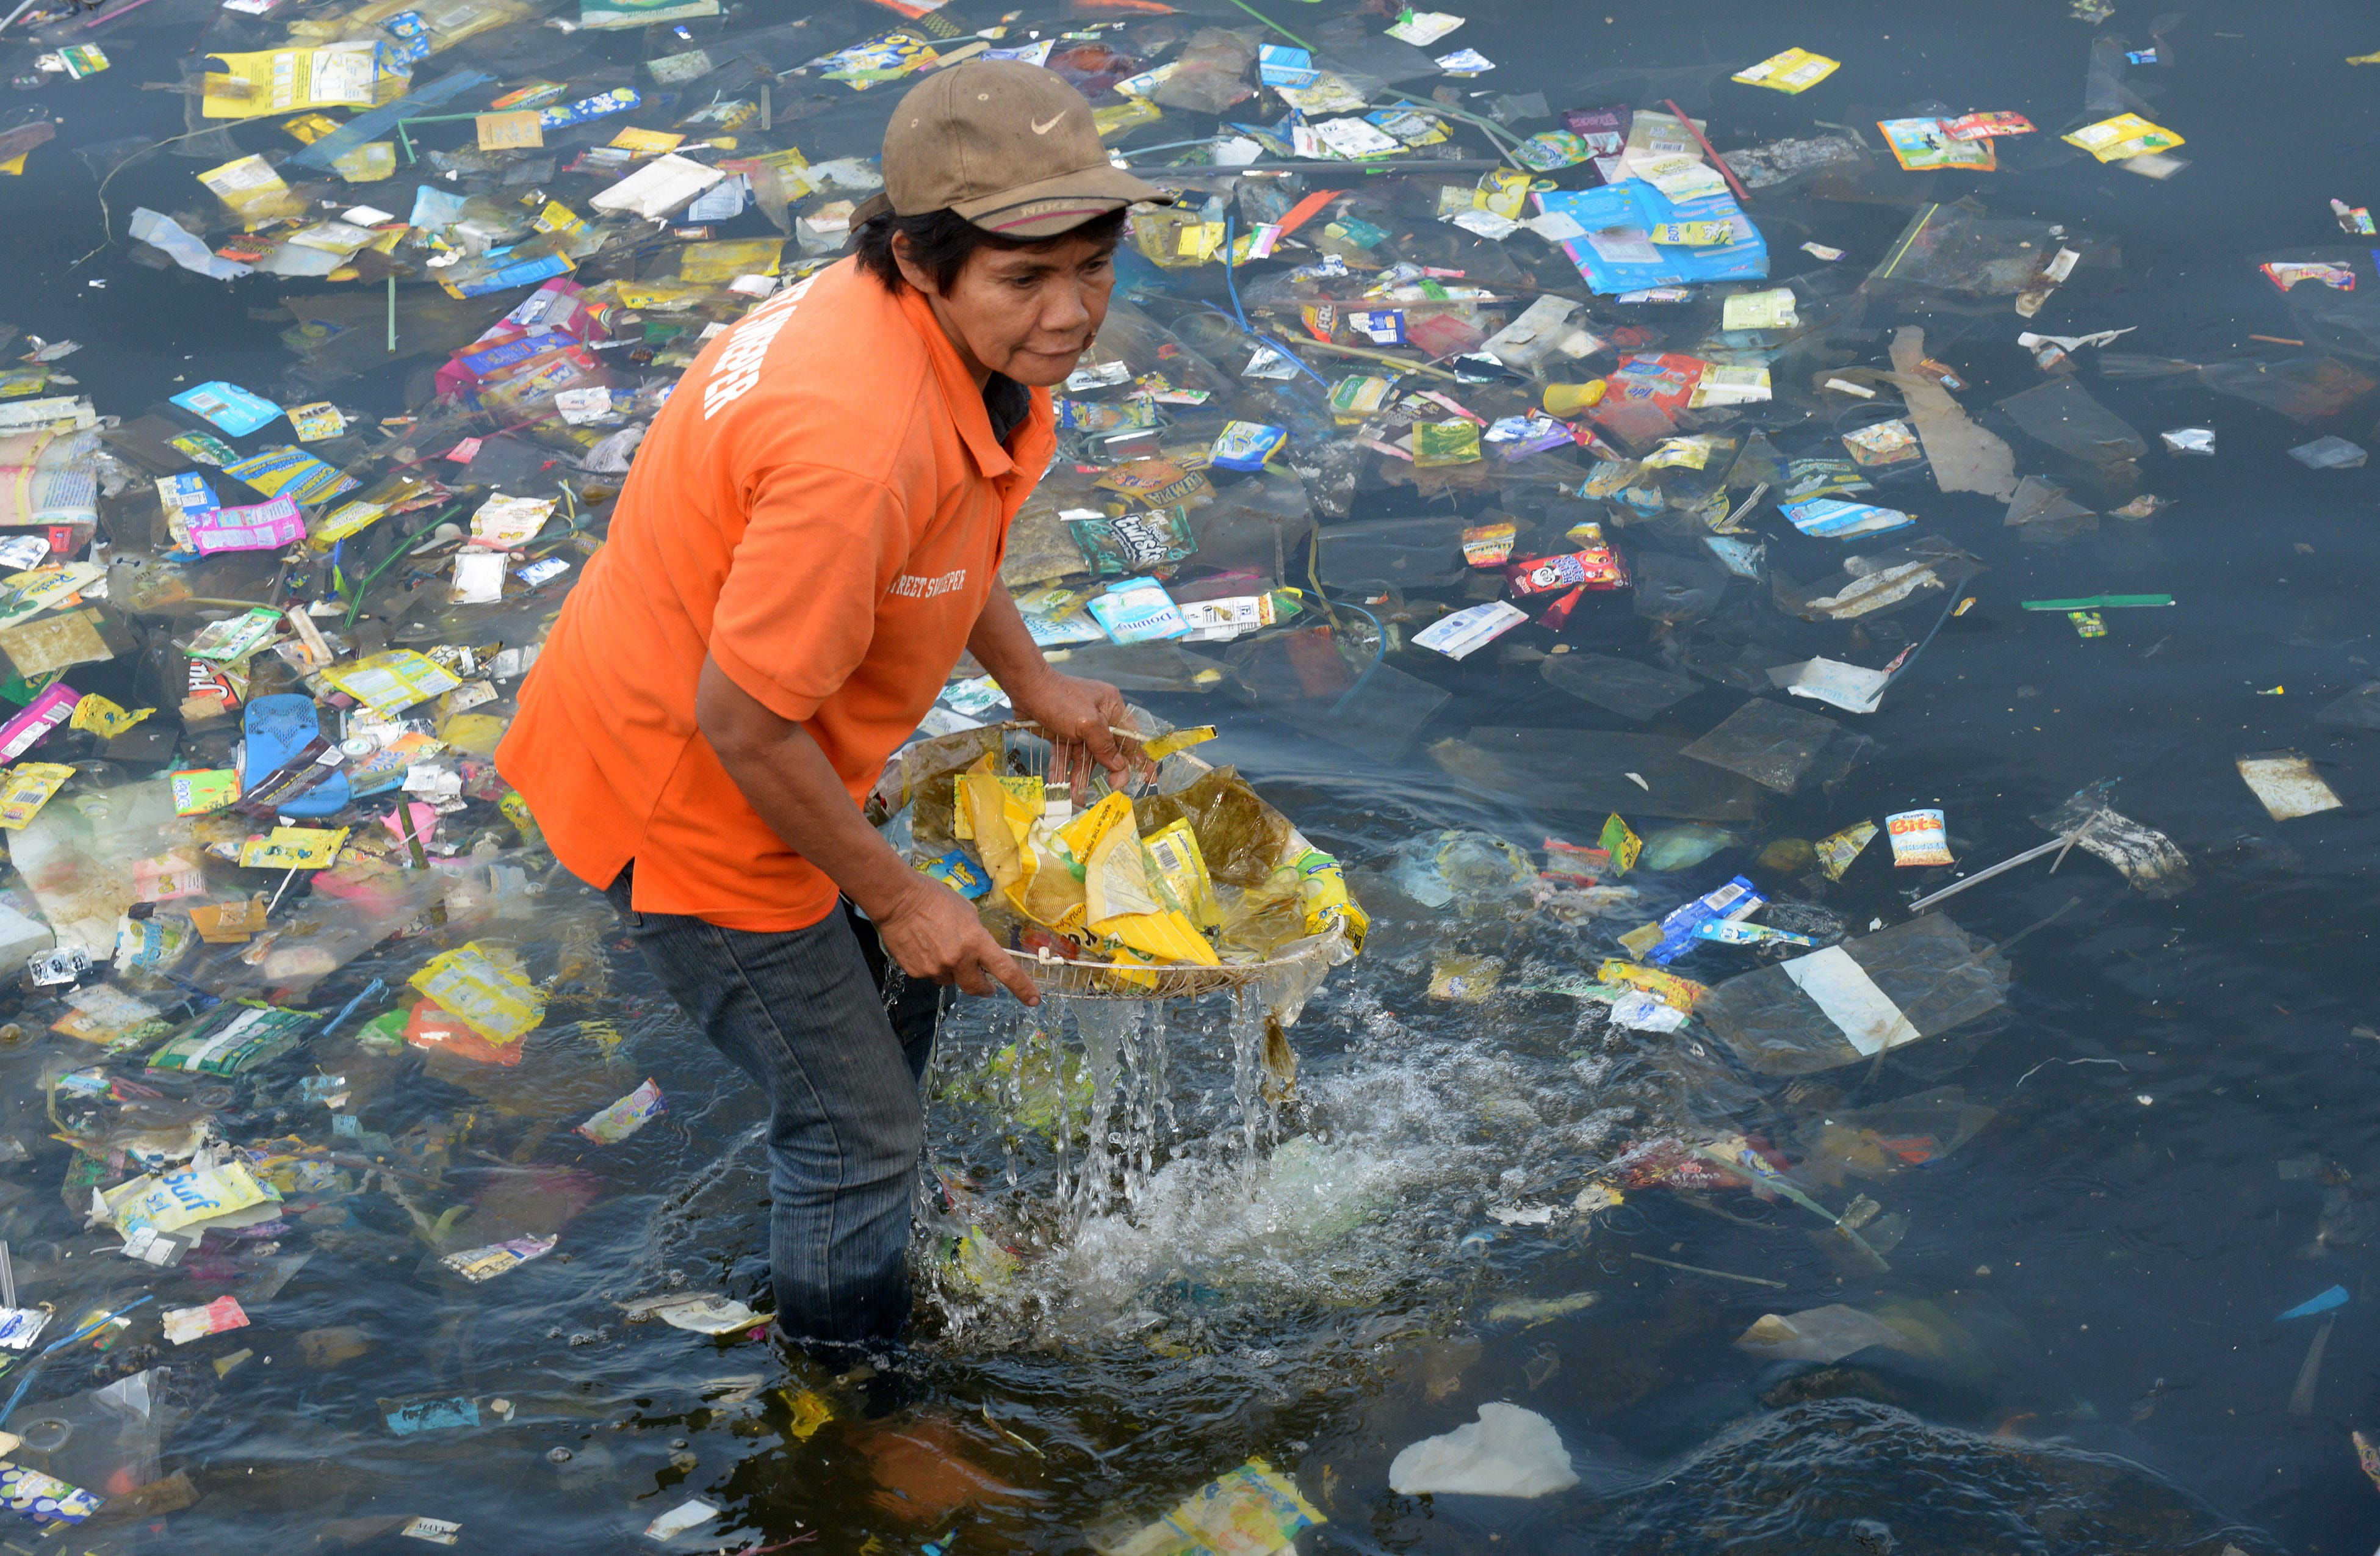 Plastic bags, forks and containers are everywhere during the pandemic, increasing pollution